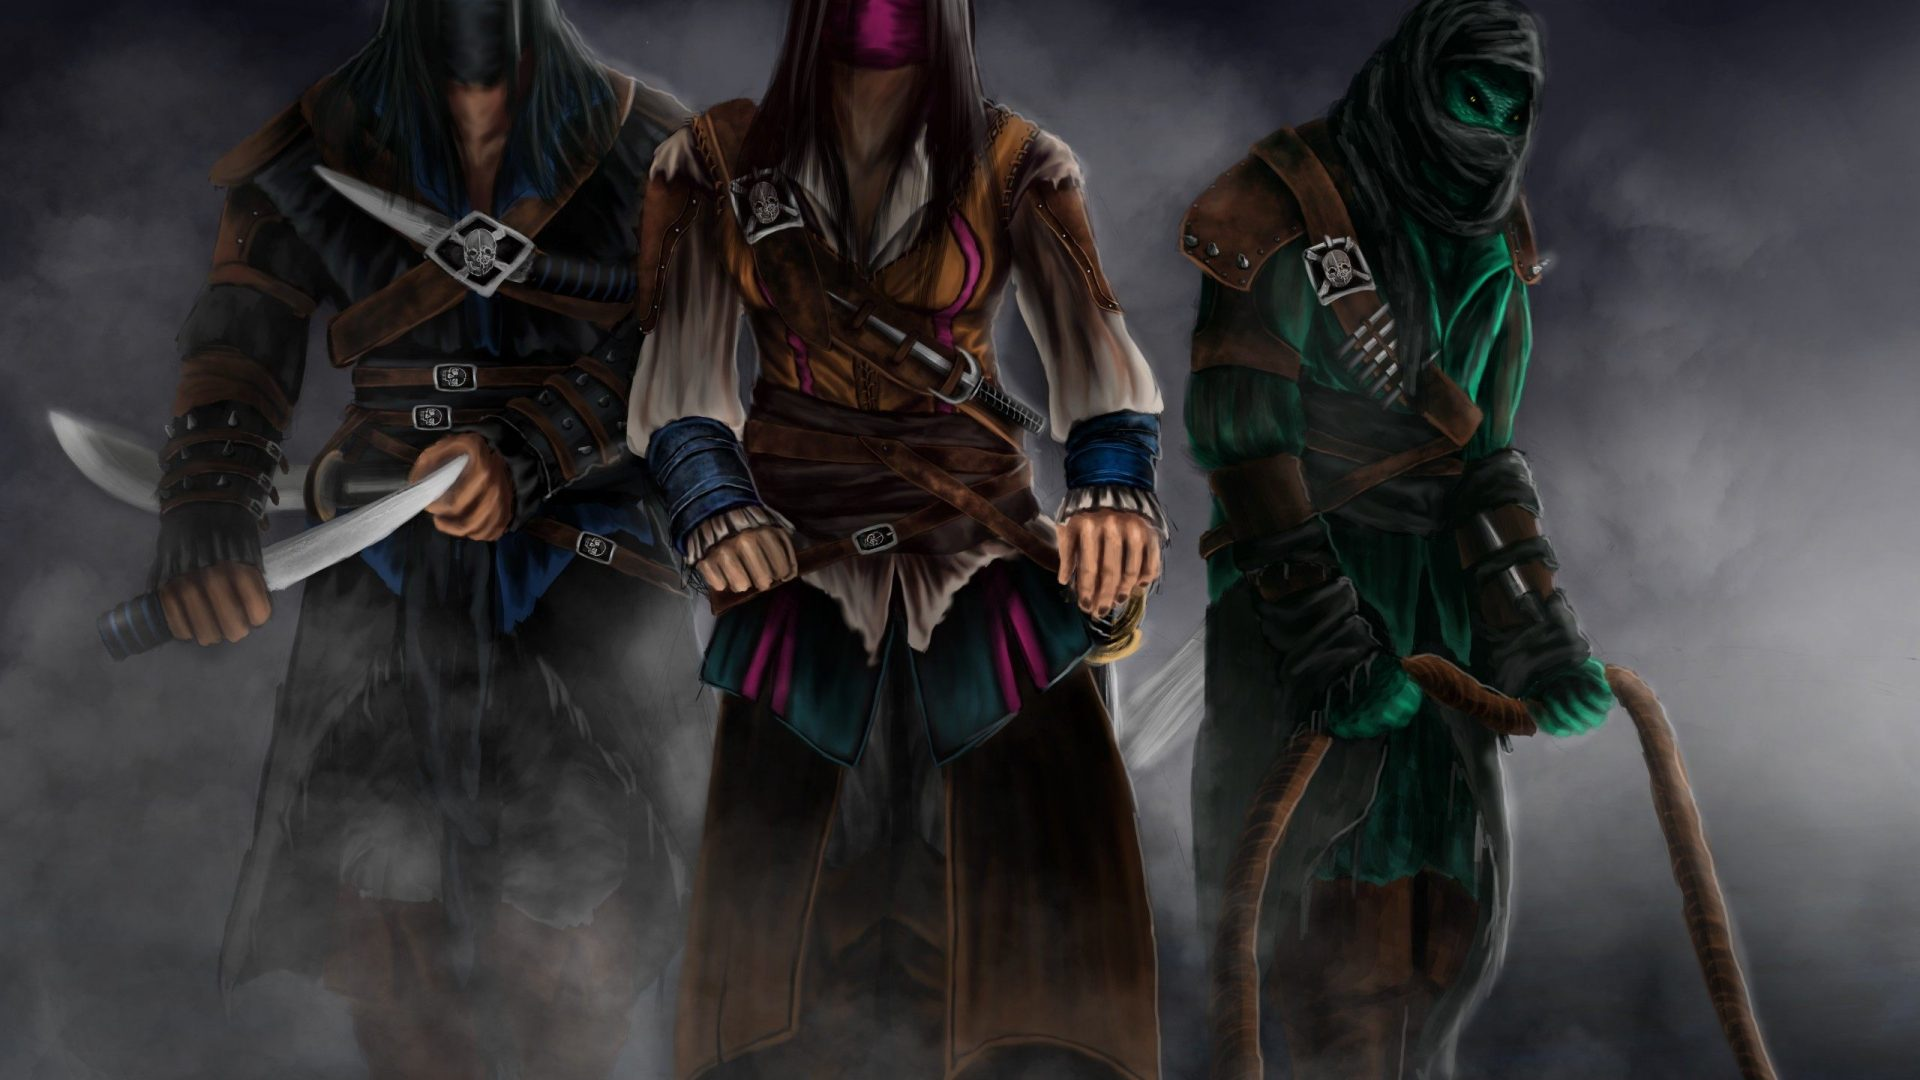 mortal-kombat-characters-hd-1920x1080-Need-iPhone-S-Plus-Background-for-wallpaper-wpc5807383